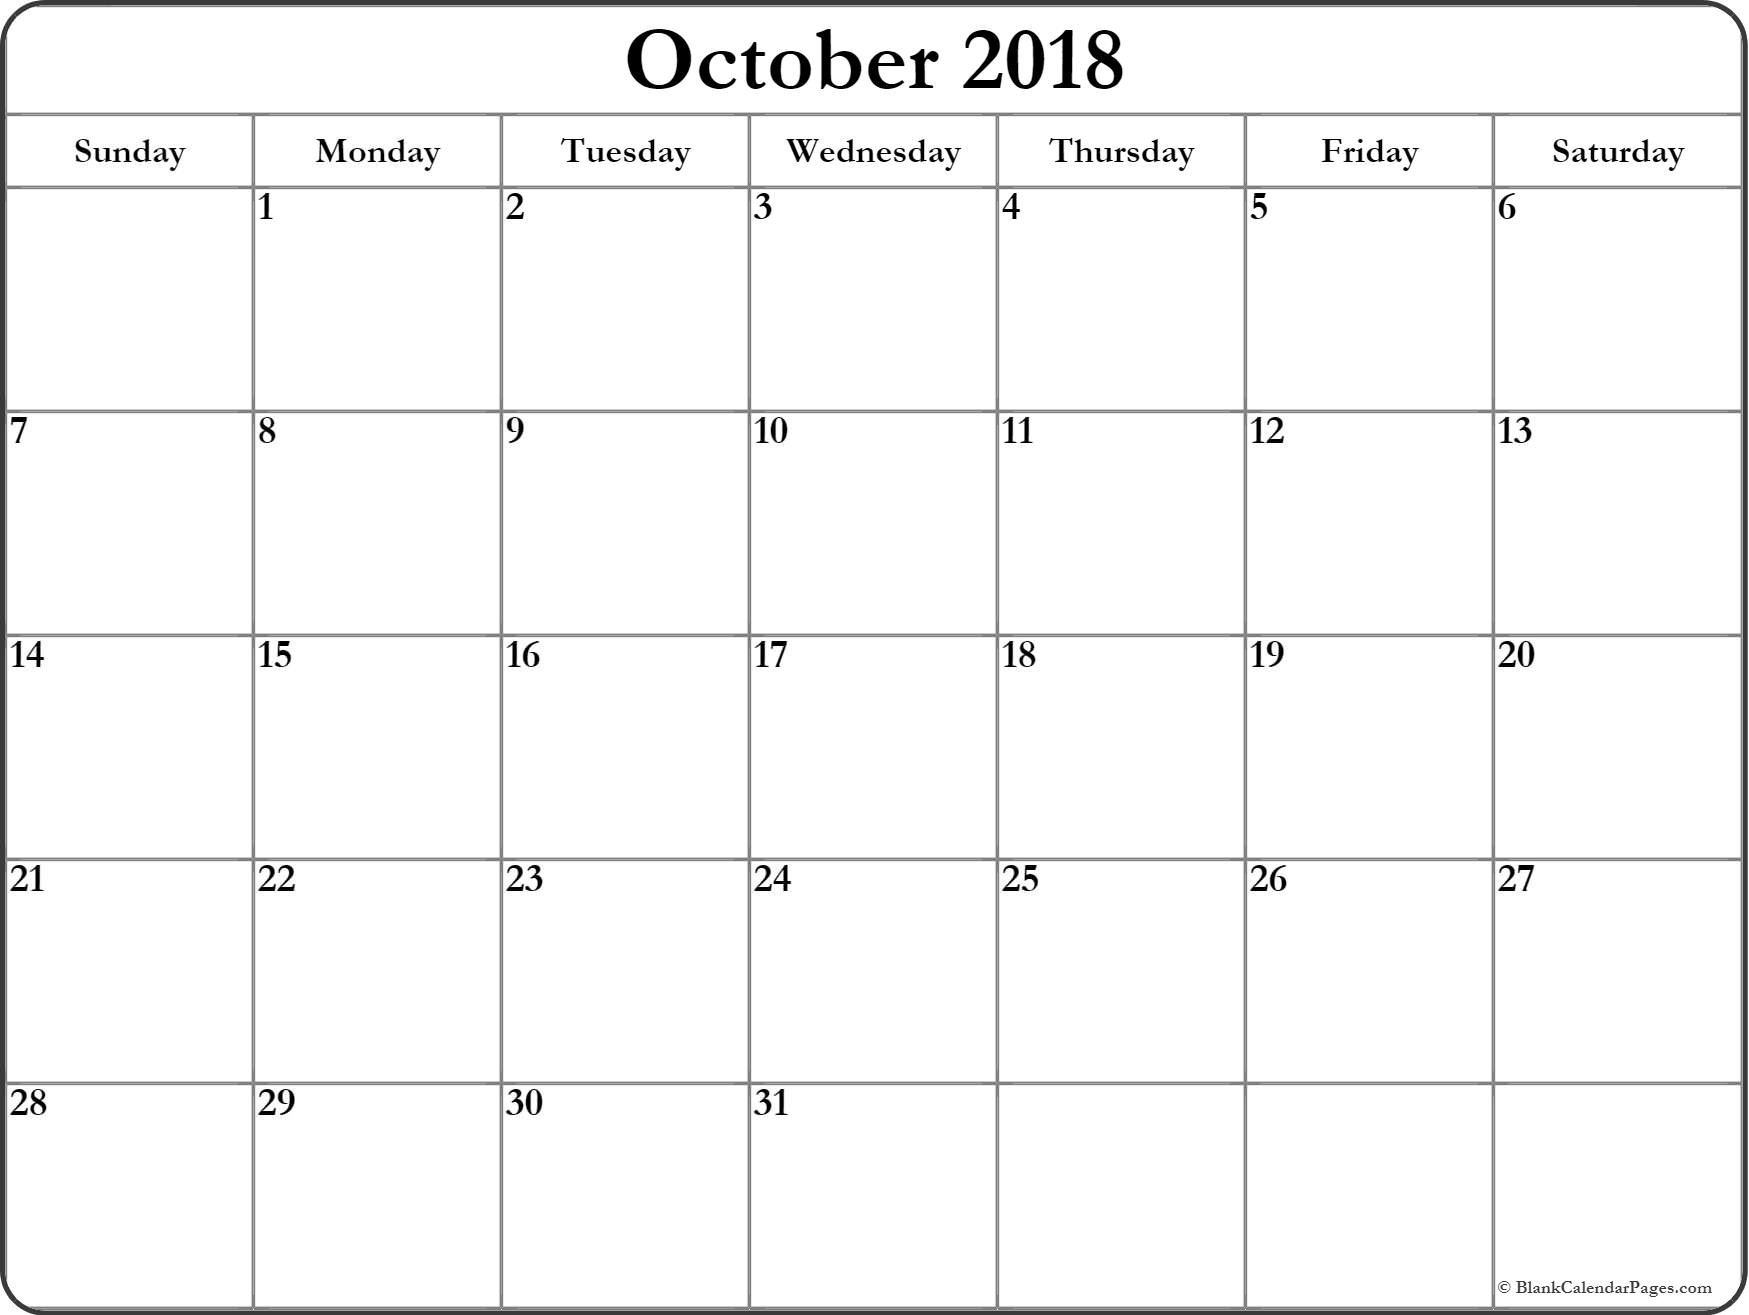 October 2018 Blank Calendar Printable Planner Templates regarding Blank Calendar For Sept